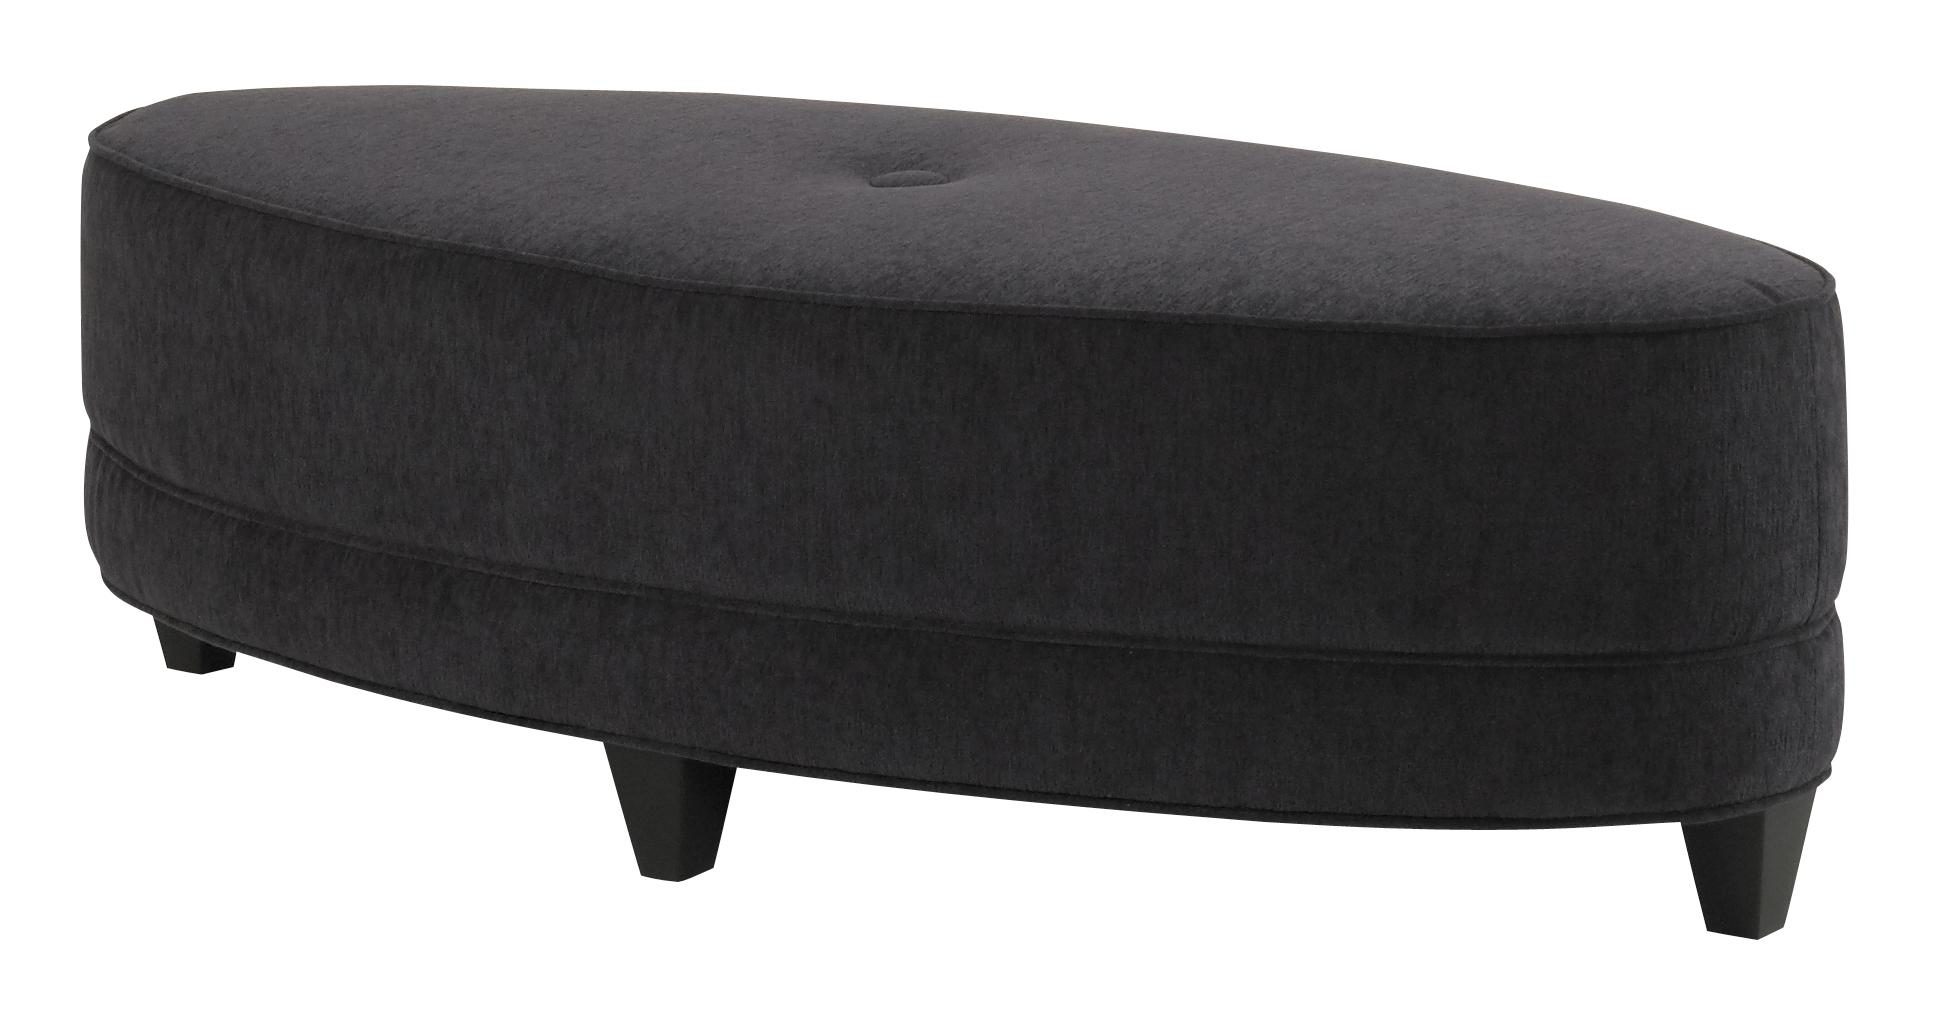 Accentuates Glendora Oval Ottoman by Jonathan Louis at Michael Alan Furniture & Design